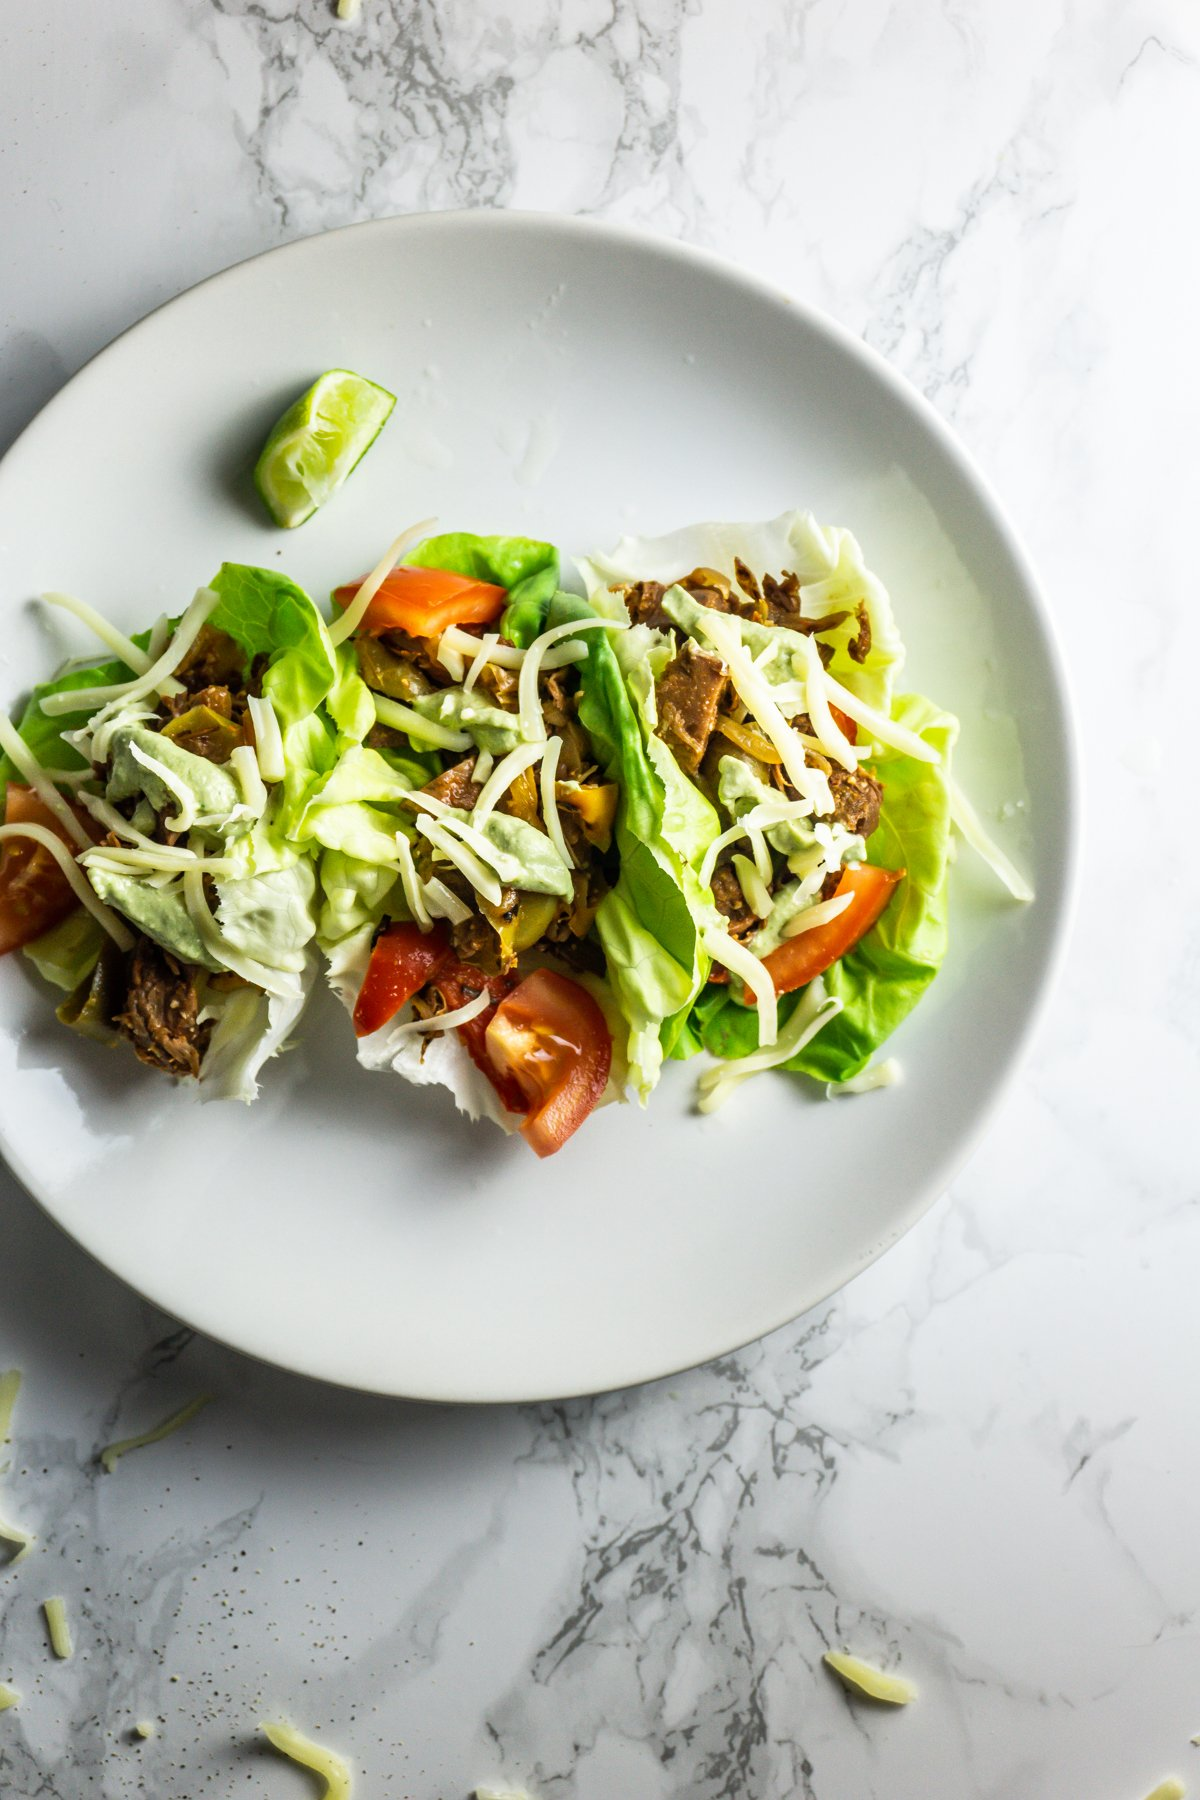 Mexican-Inspired Jackfruit Fajitas in lettuce wraps on a plate shot from above